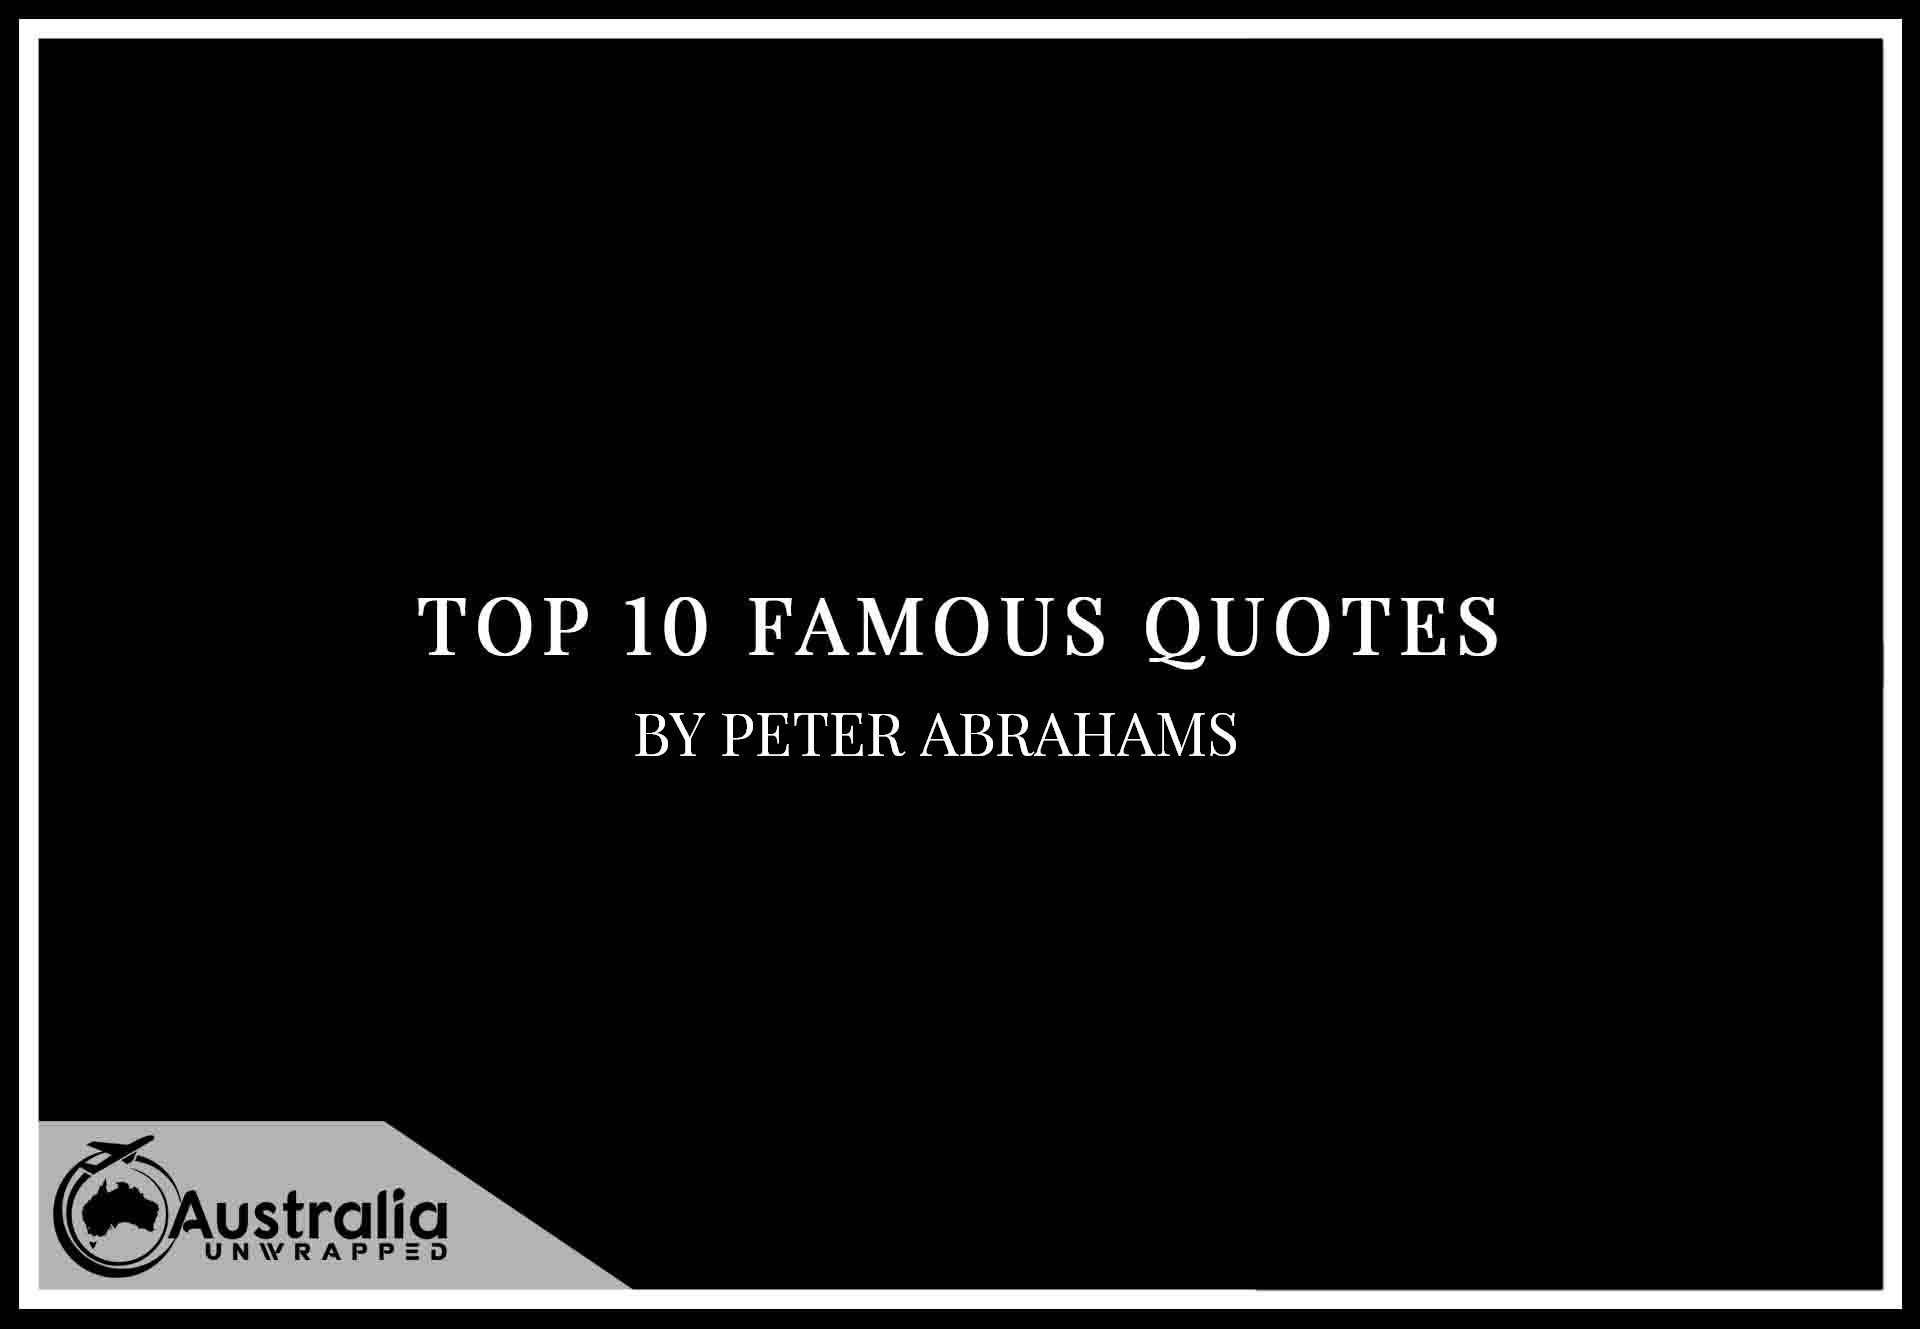 Top 10 Famous Quotes by Author Peter Abrahams